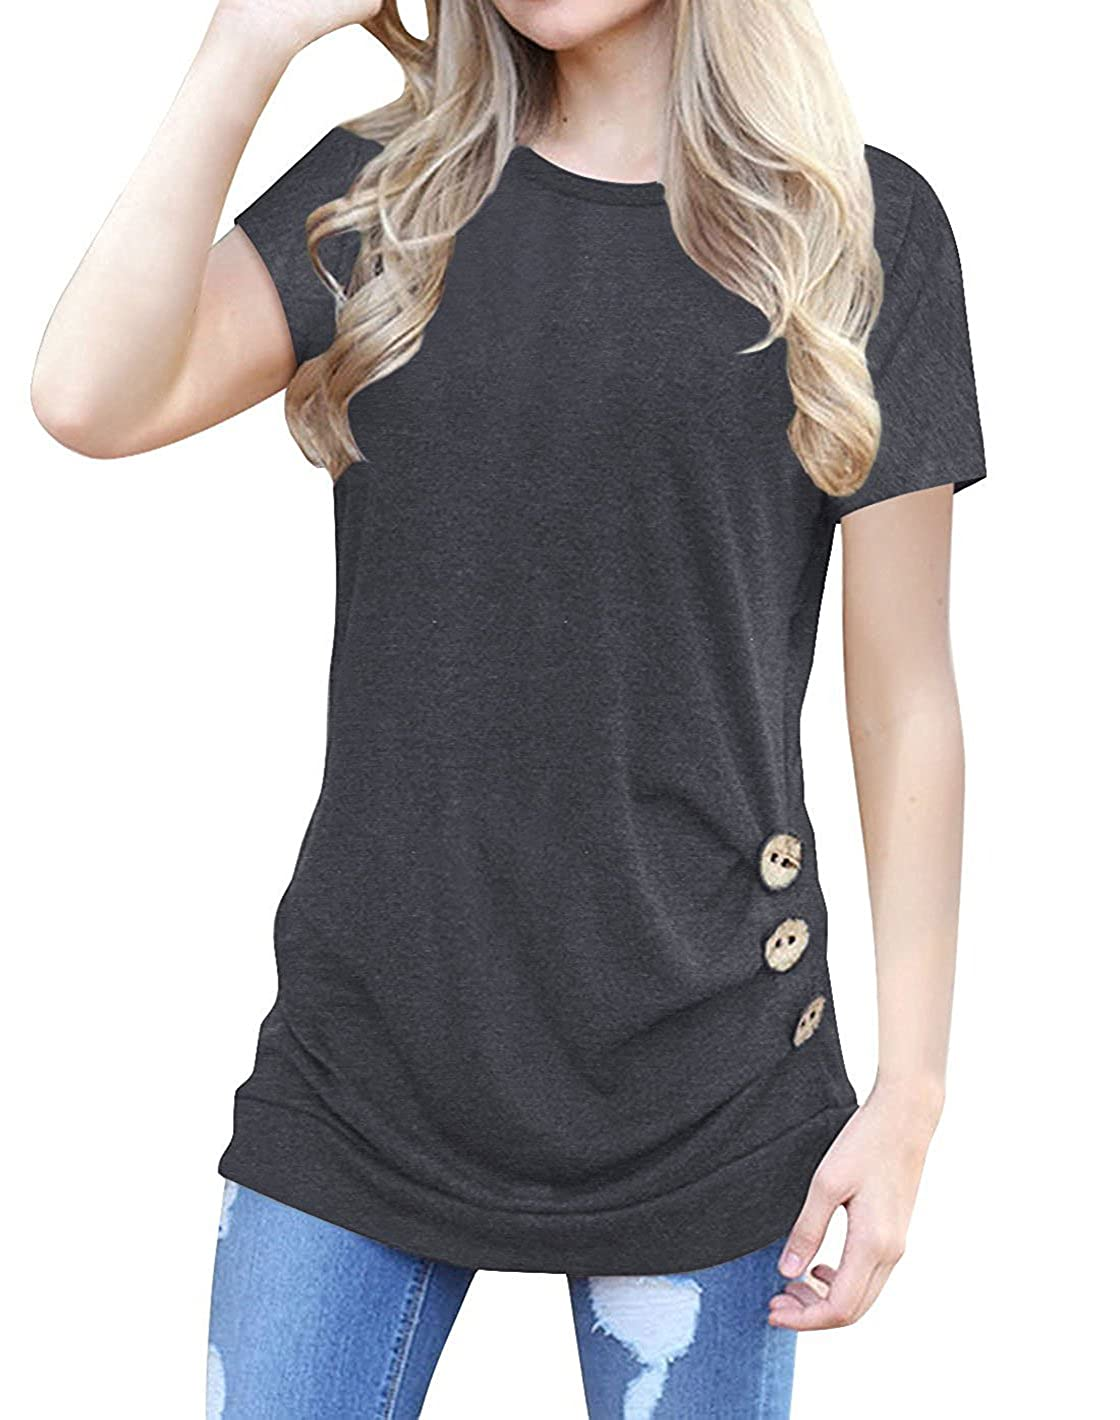 042800bb37 It's soft and comfy to wear. Styling Design: Short sleeve tunic shirt  casual loose blouse top for women.